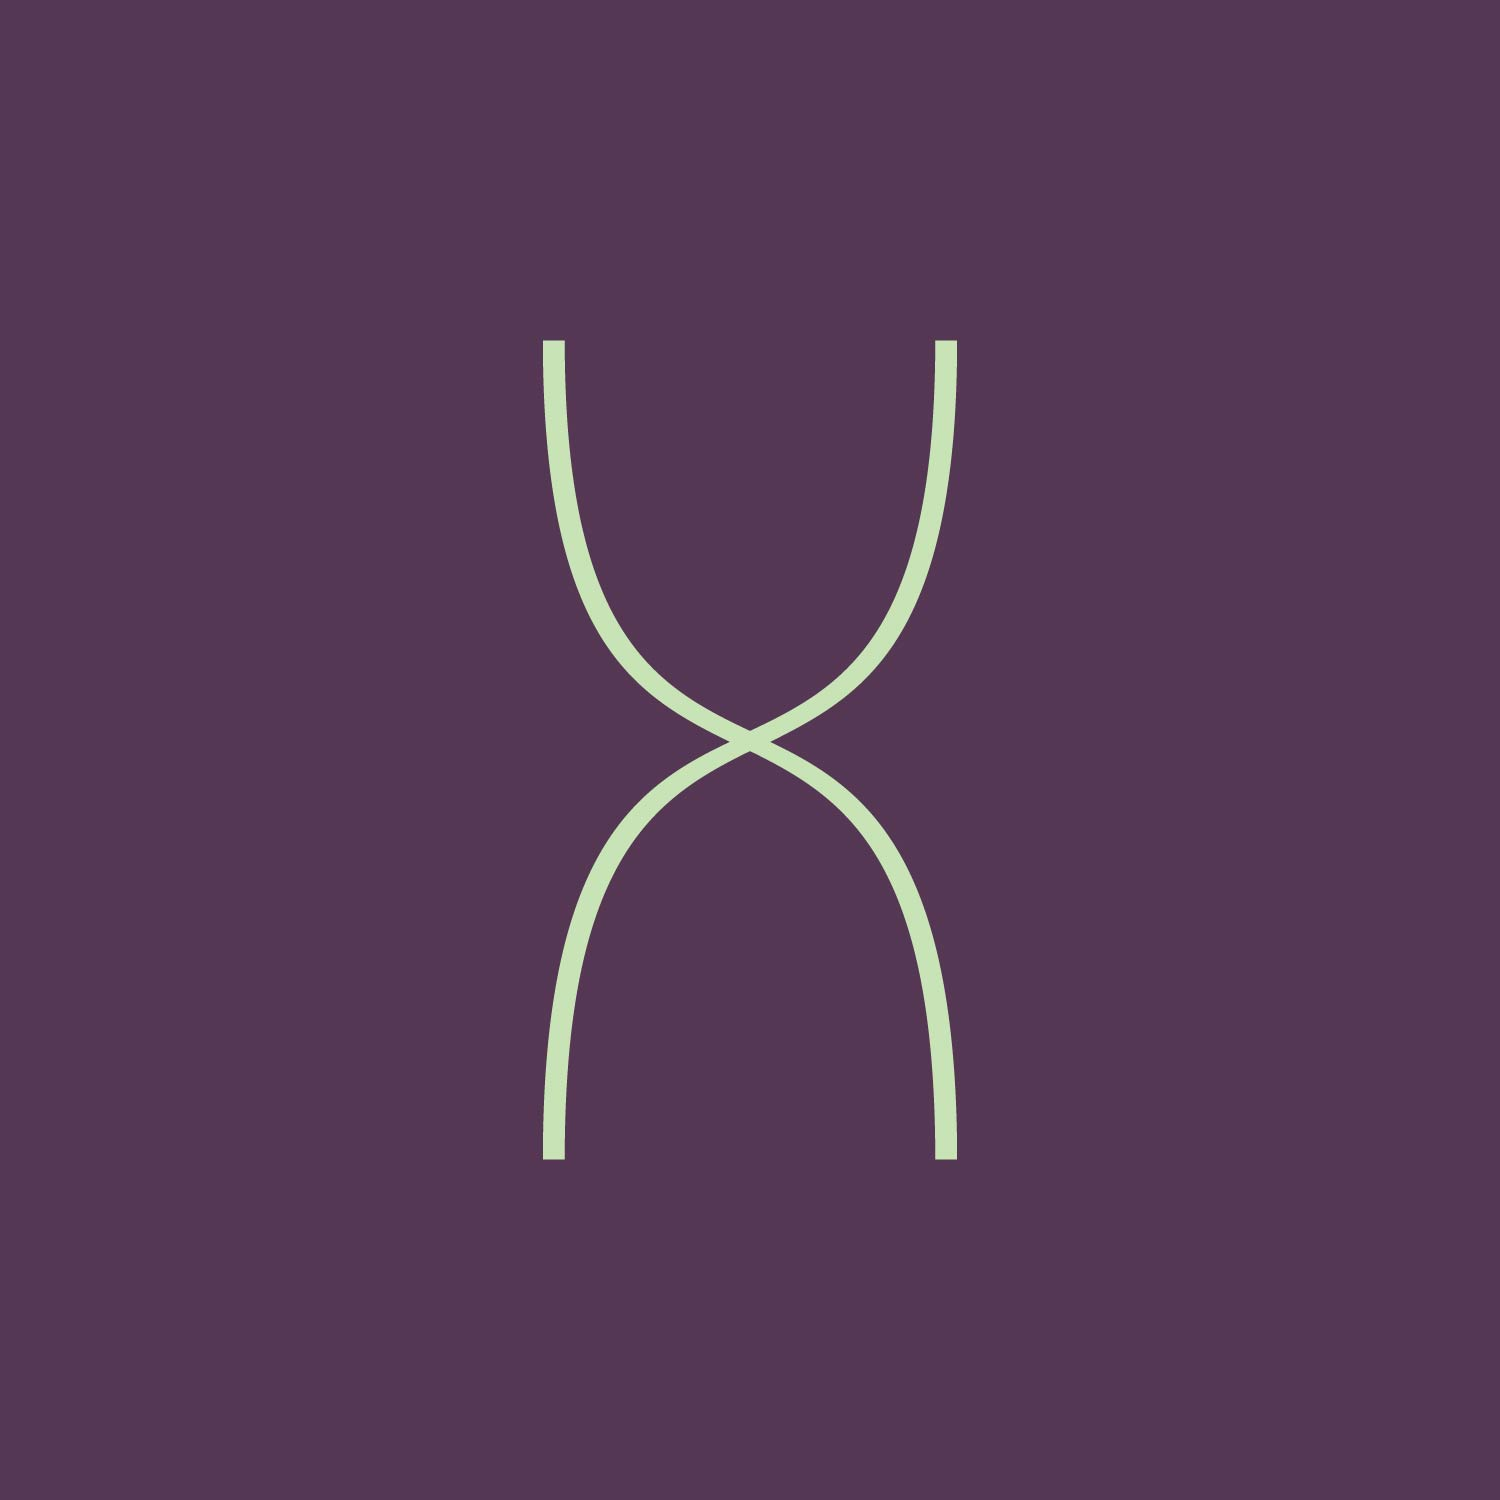 thin letter X stylized like a double helix